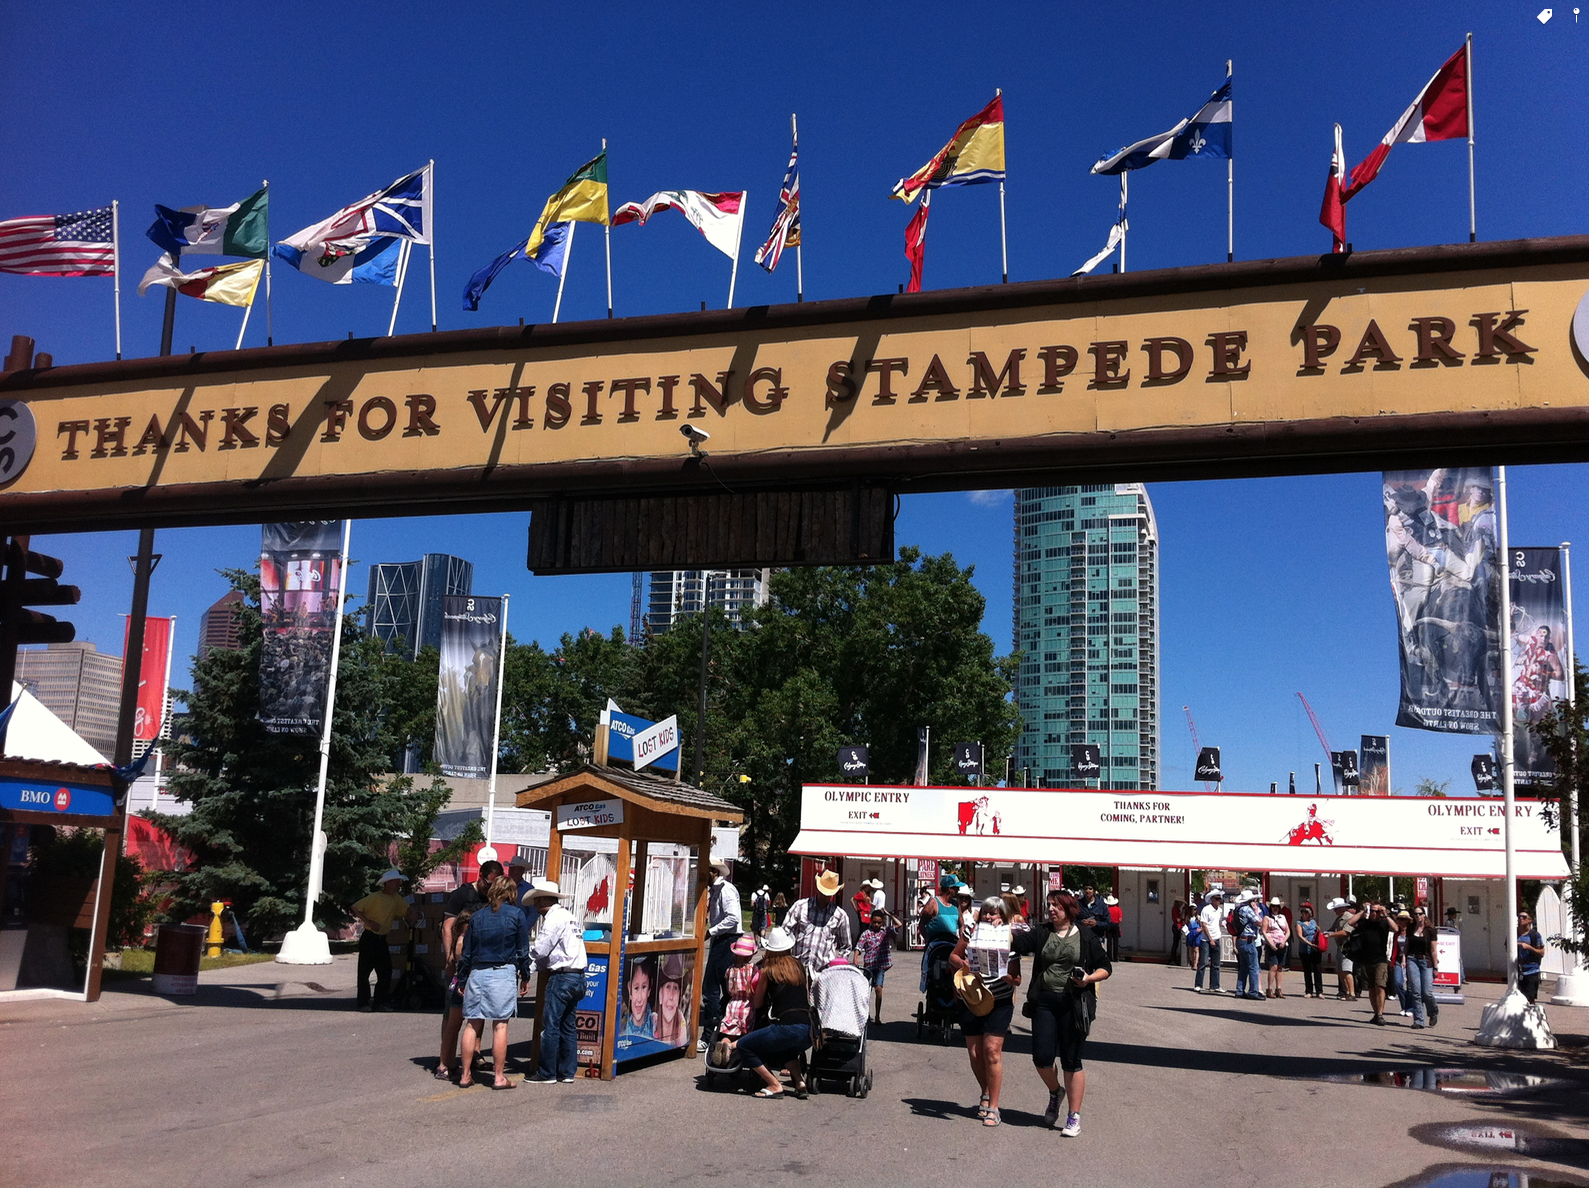 The next evolution of Stampede Park will be from restricted gated-community to an open community where people are free to walk, cycle and drive through like any other community in Calgary.